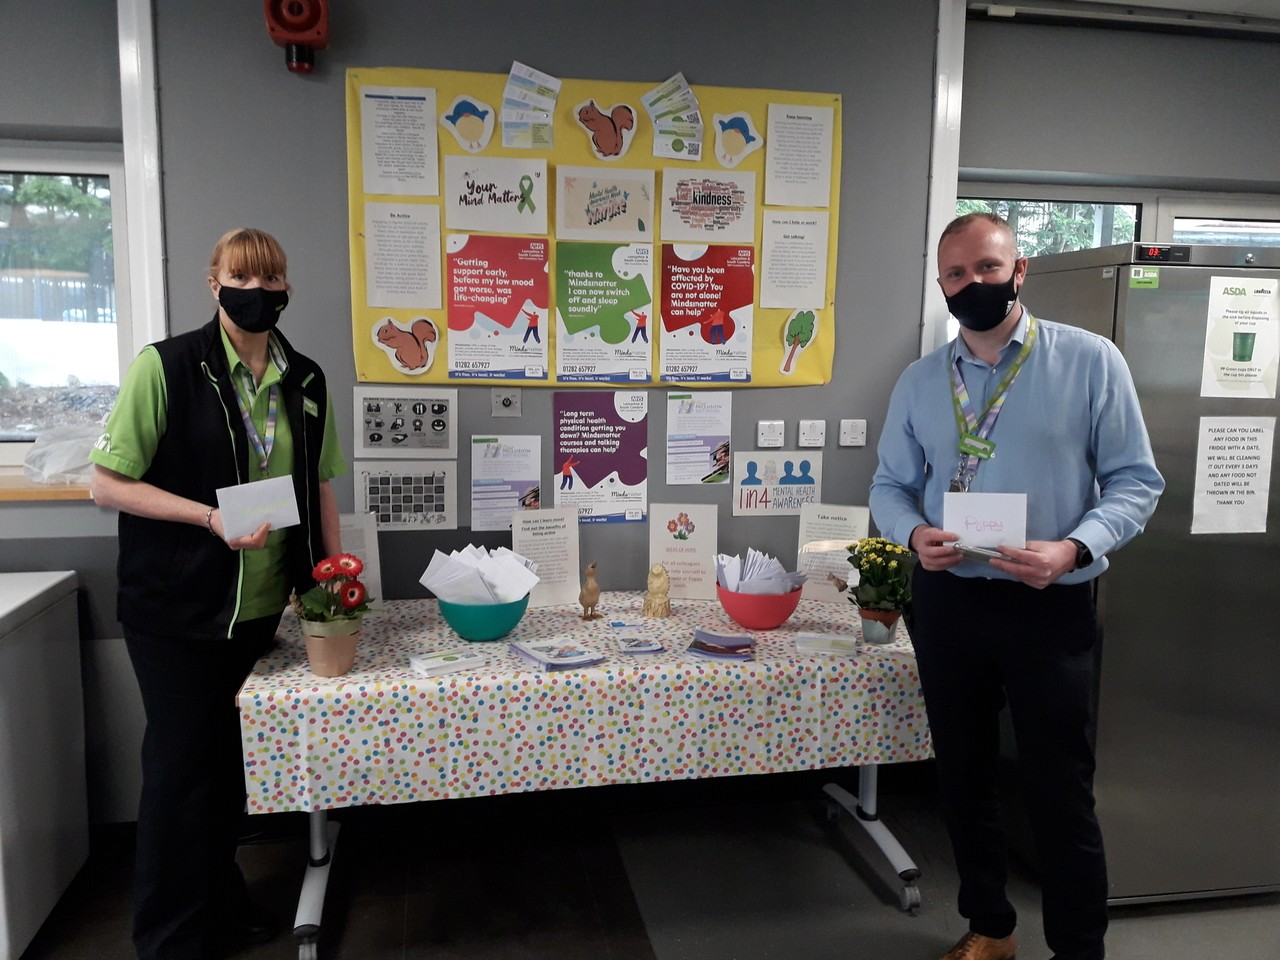 To support mental health week we have put up an advise area and given free poppy and sunflower seeds to every colleague | Asda Colne